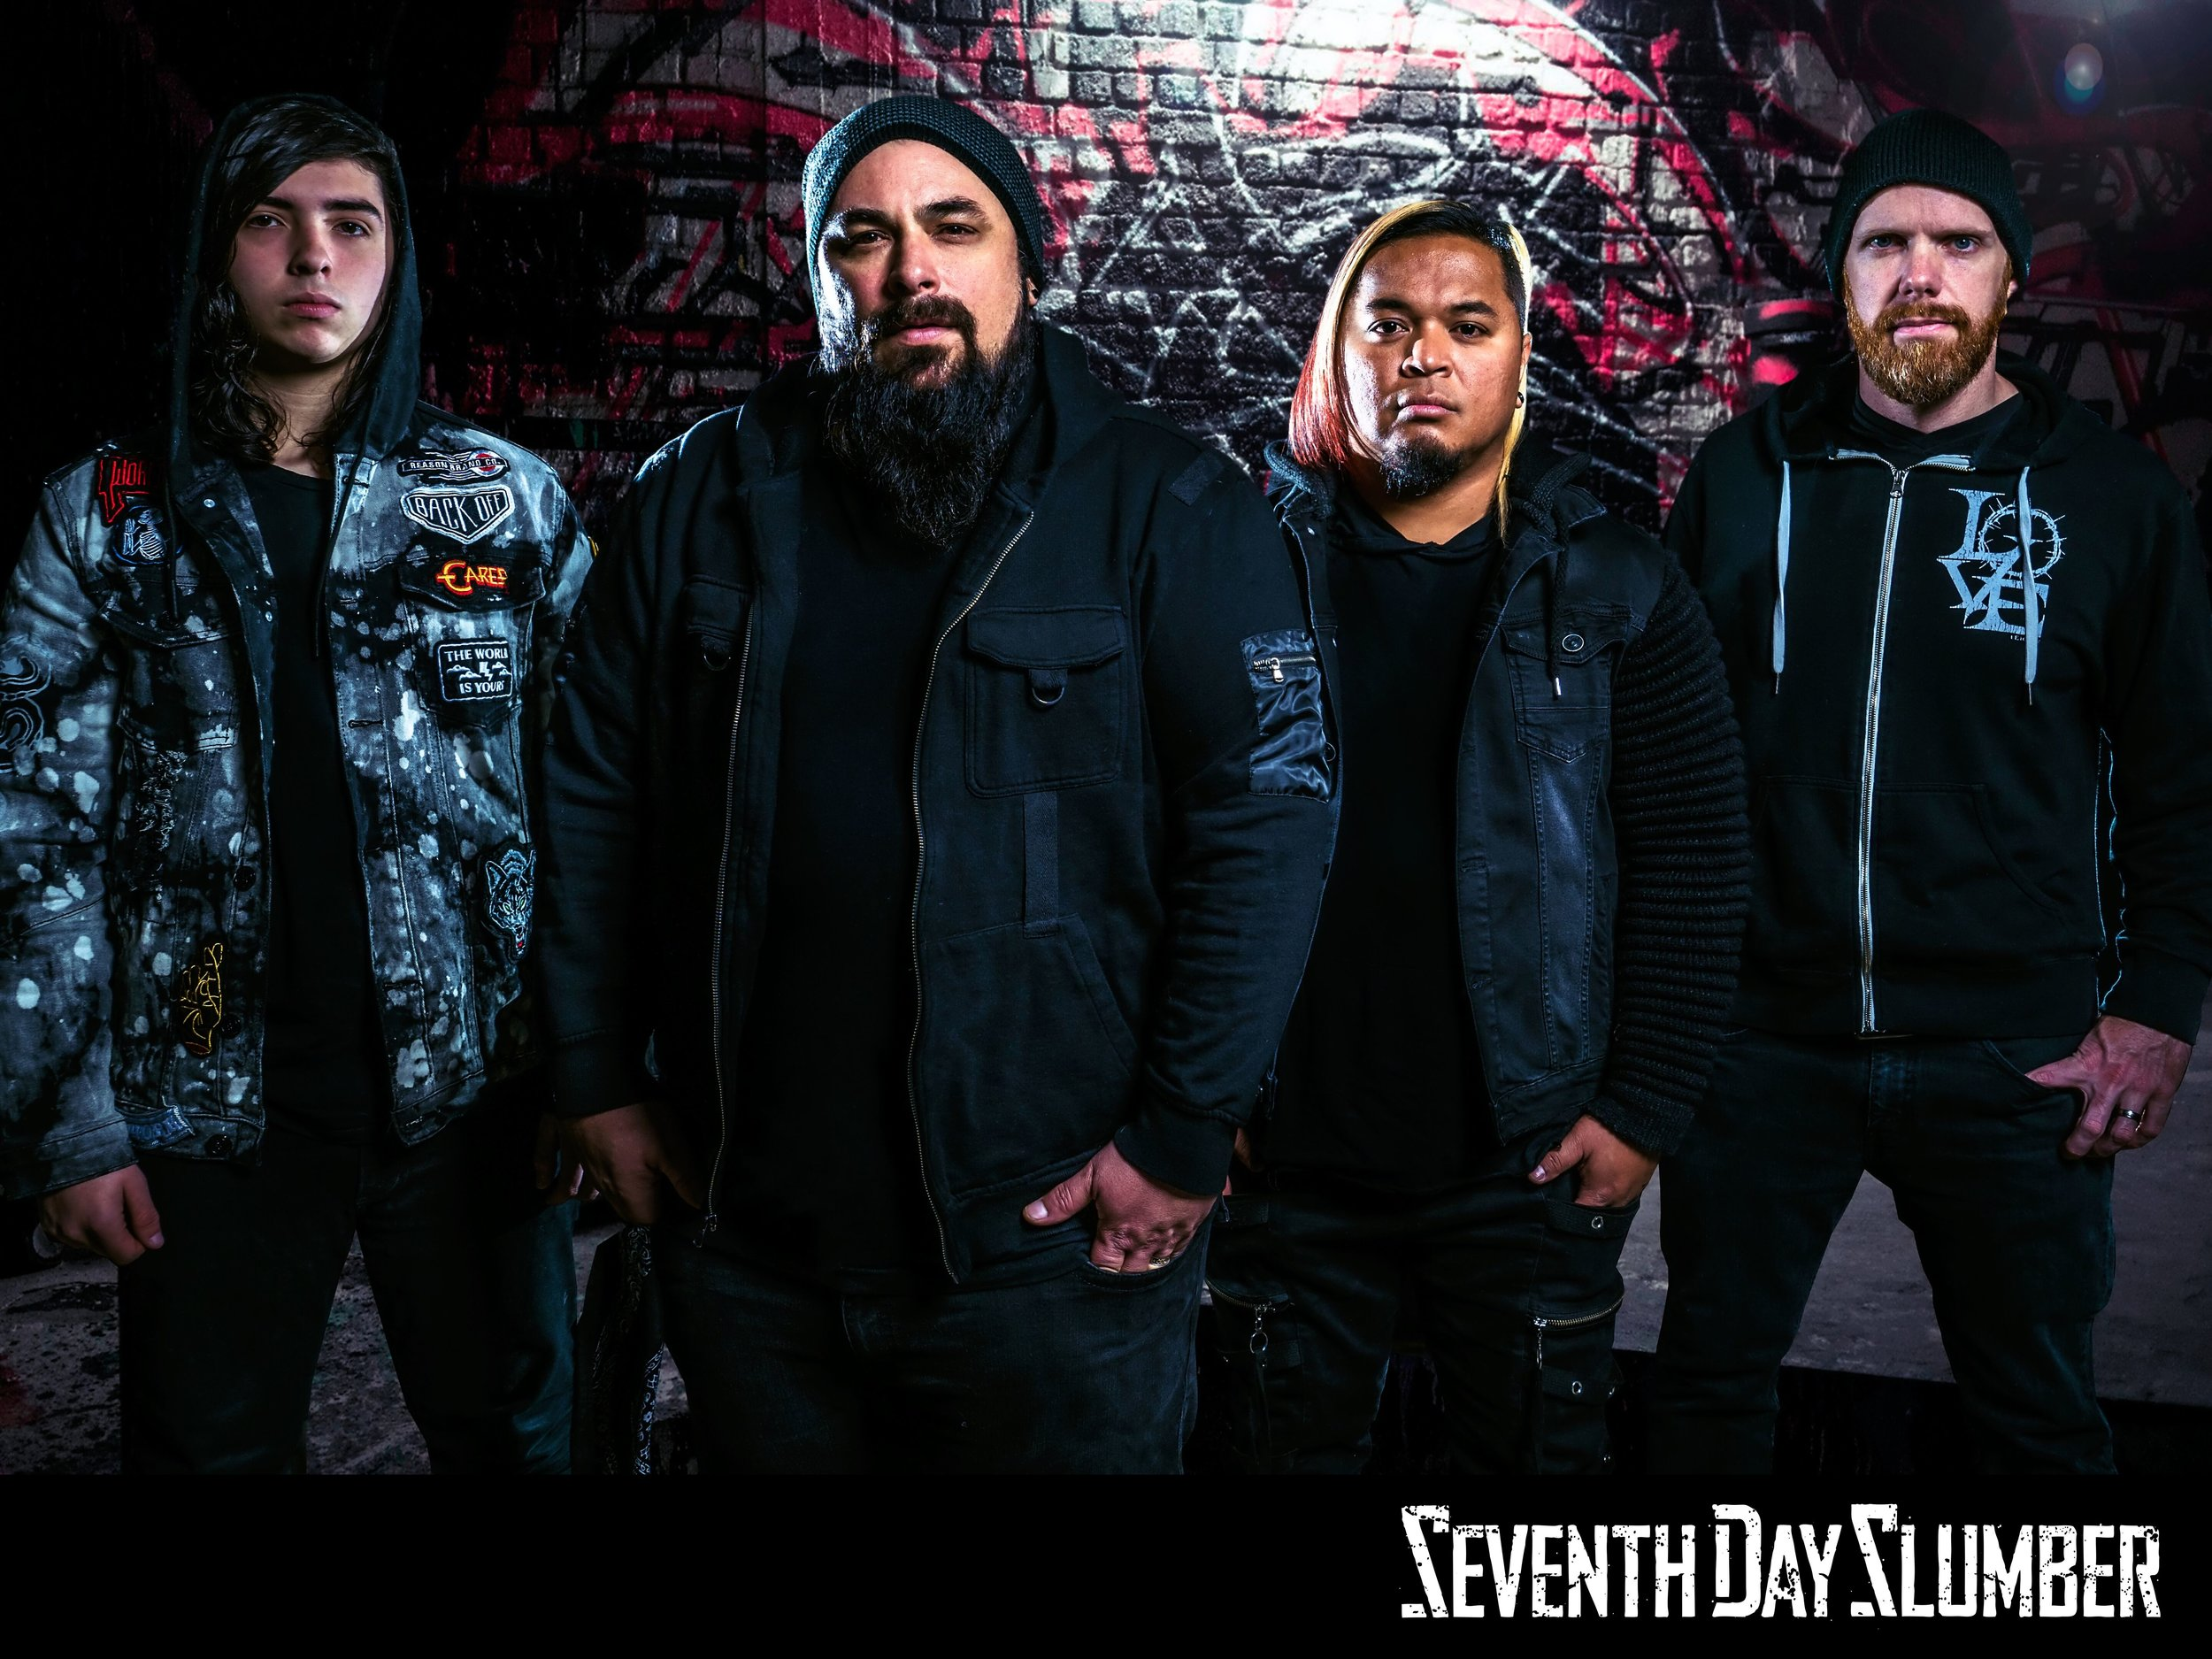 """SEVENTH DAY SLUMBER Among an elite group of bands who have dominated and shaped the Christian rock scene for more than two decades, Seventh Day Slumber remains a consistent force on Christian CHR and rock radio. They've sold a combined total of nearly 500,000 units to date; charted two Billboard #1 albums; five #1 singles; 14 Top 10 hits; and garnered a Dove Award. Joseph Rojas and his bandmates--Jeremy Holderfield (guitar); son Blaise Rojas (drums); and friend Ken Reed (bass)--are known for a string of signature songs, including """"Oceans From The Rain,"""" """"Inside Out,"""" """"Caroline,"""" """"Finally Awake"""" """"We Are The Broken"""" and """"Wasted Life.  THE STORY Seventh Day Slumber frontman """"Joseph Rojas"""" gave his life to Jesus in the back of an ambulance after a suicide attempt, overdosing under the same roof where his praying mother daily fell to her knees on his behalf. Joseph's mile-long rap sheet and $400 a day cocaine habit left him nowhere to turn. God supernaturally showed up on the way to the hospital that night, touching Joseph's heart and changing his life forever."""